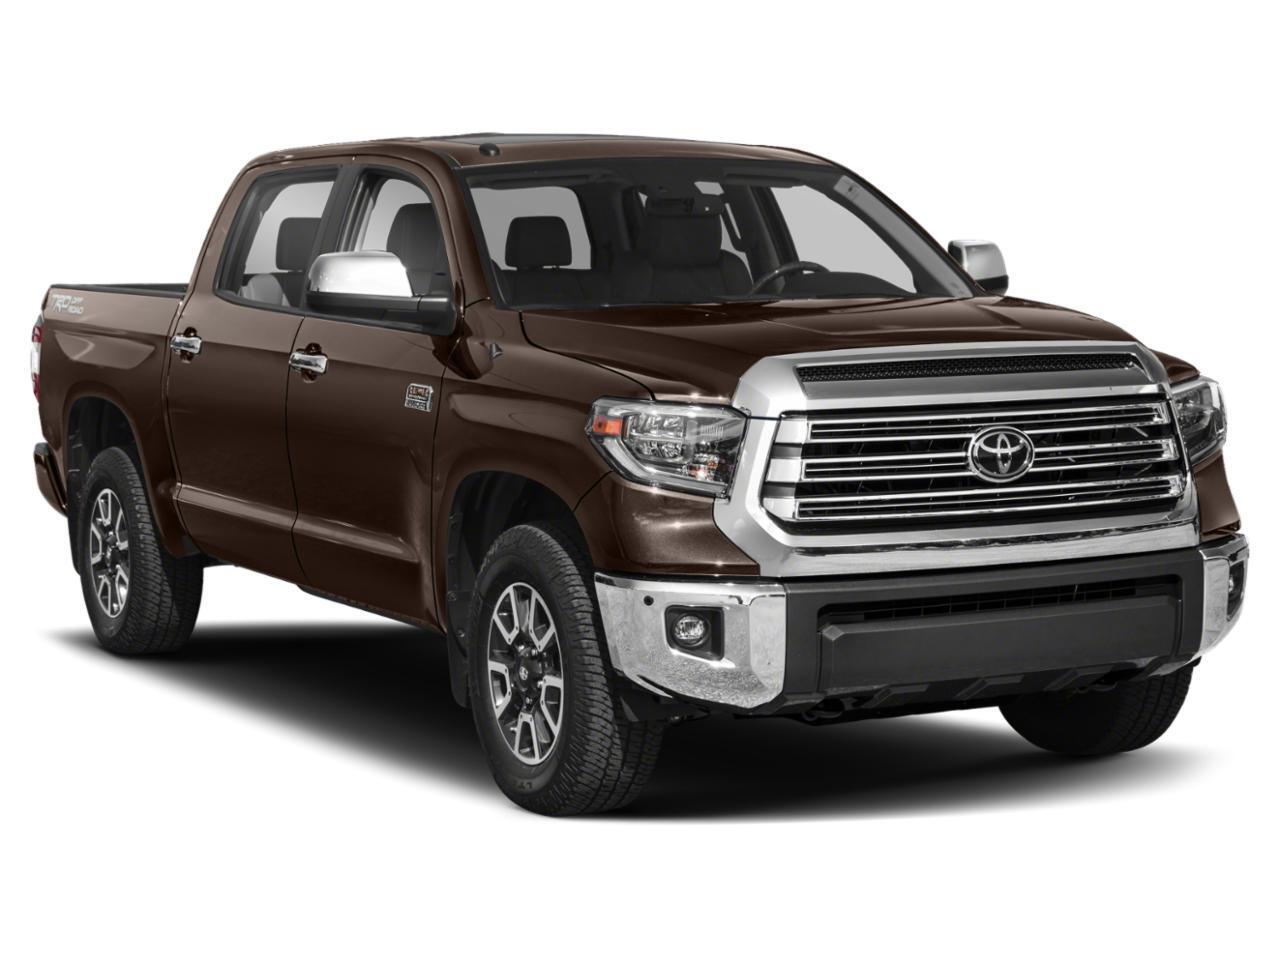 2021 Toyota Tundra 1794 Edition Decatur AL